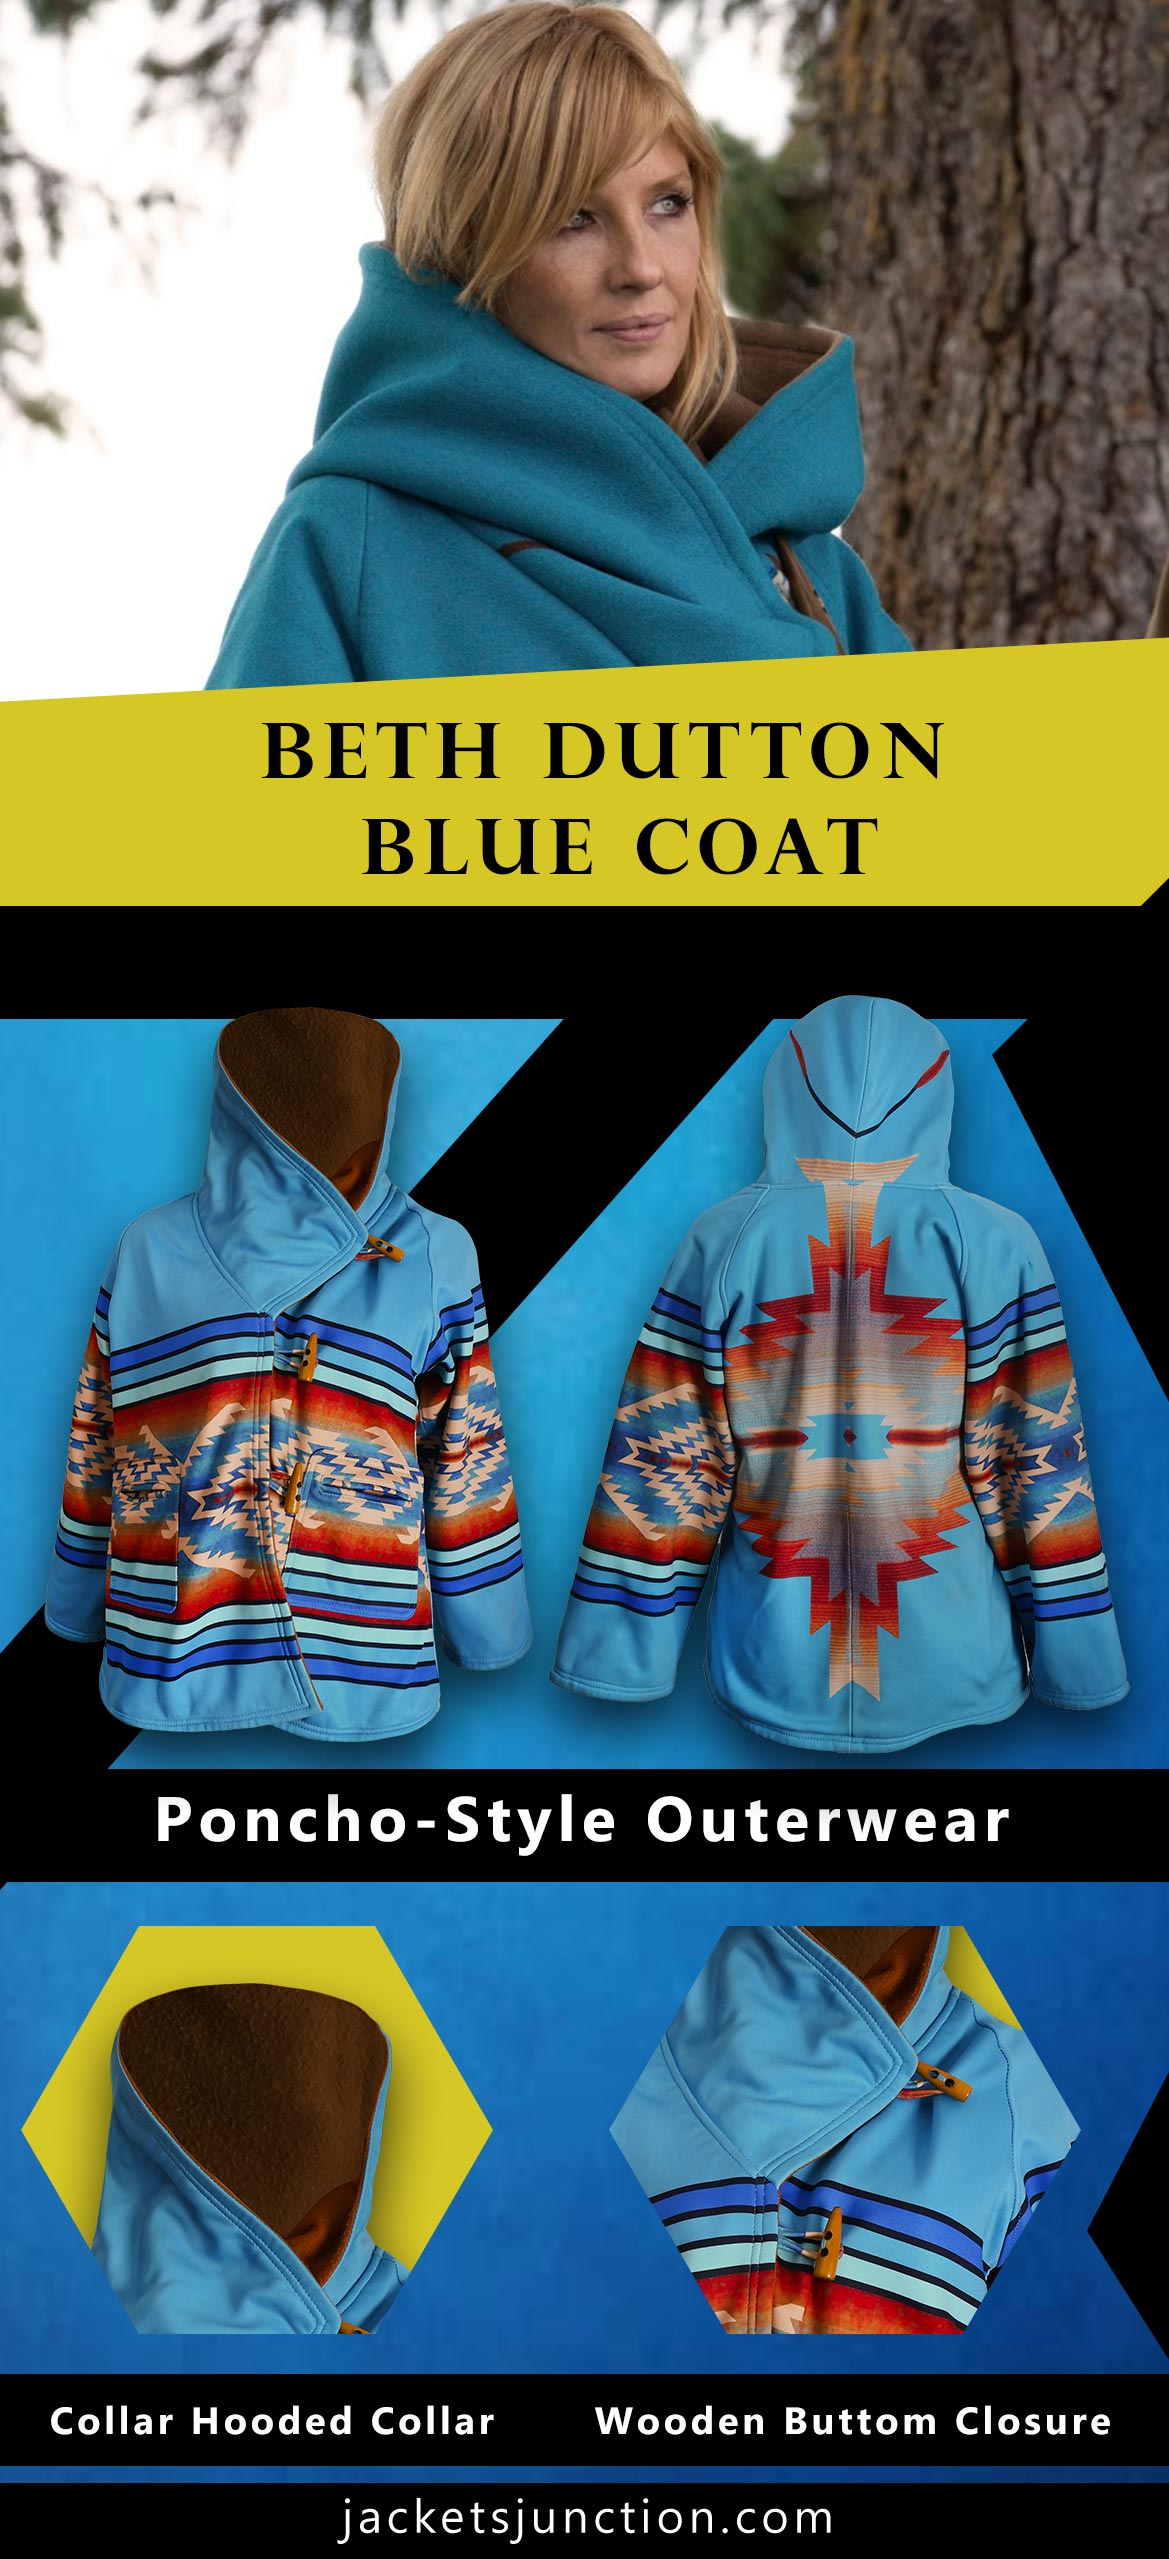 Kelly-Reilly-Yellowstone-Blue-Hooded-Coat-infographic-banner